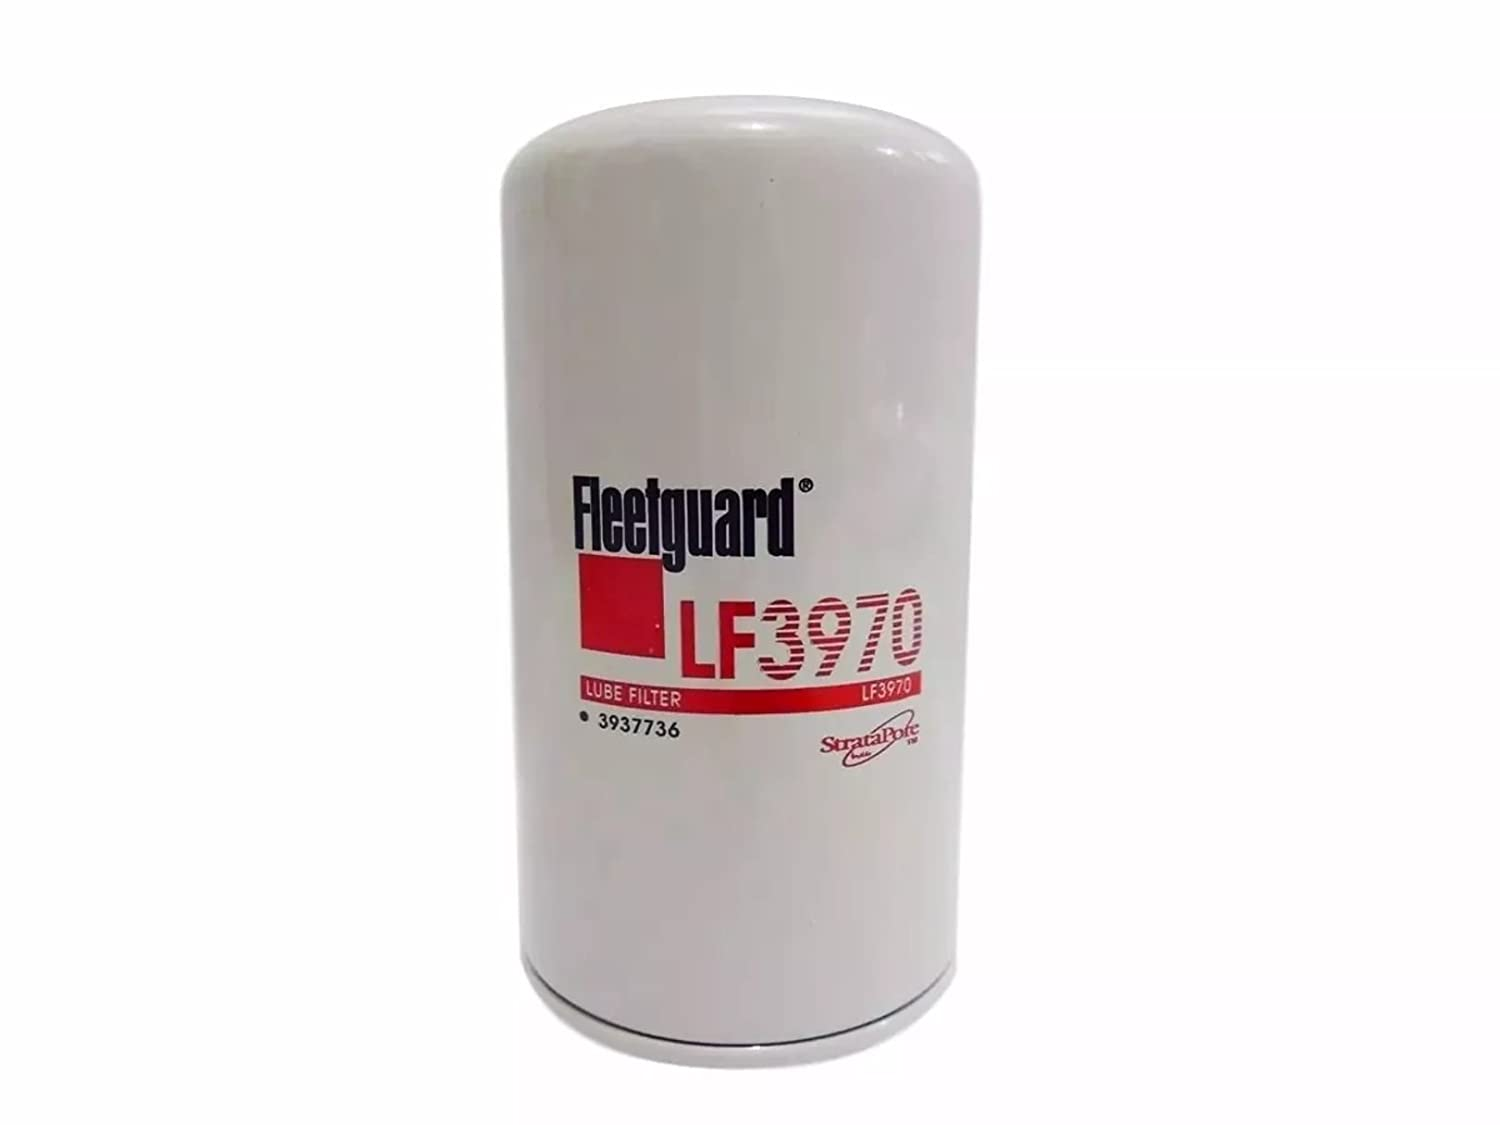 Fleetguard Oil Filter Lf3970 Cummins Isb Engine Automotive Fuel For 04 14 0l Frieghtliner